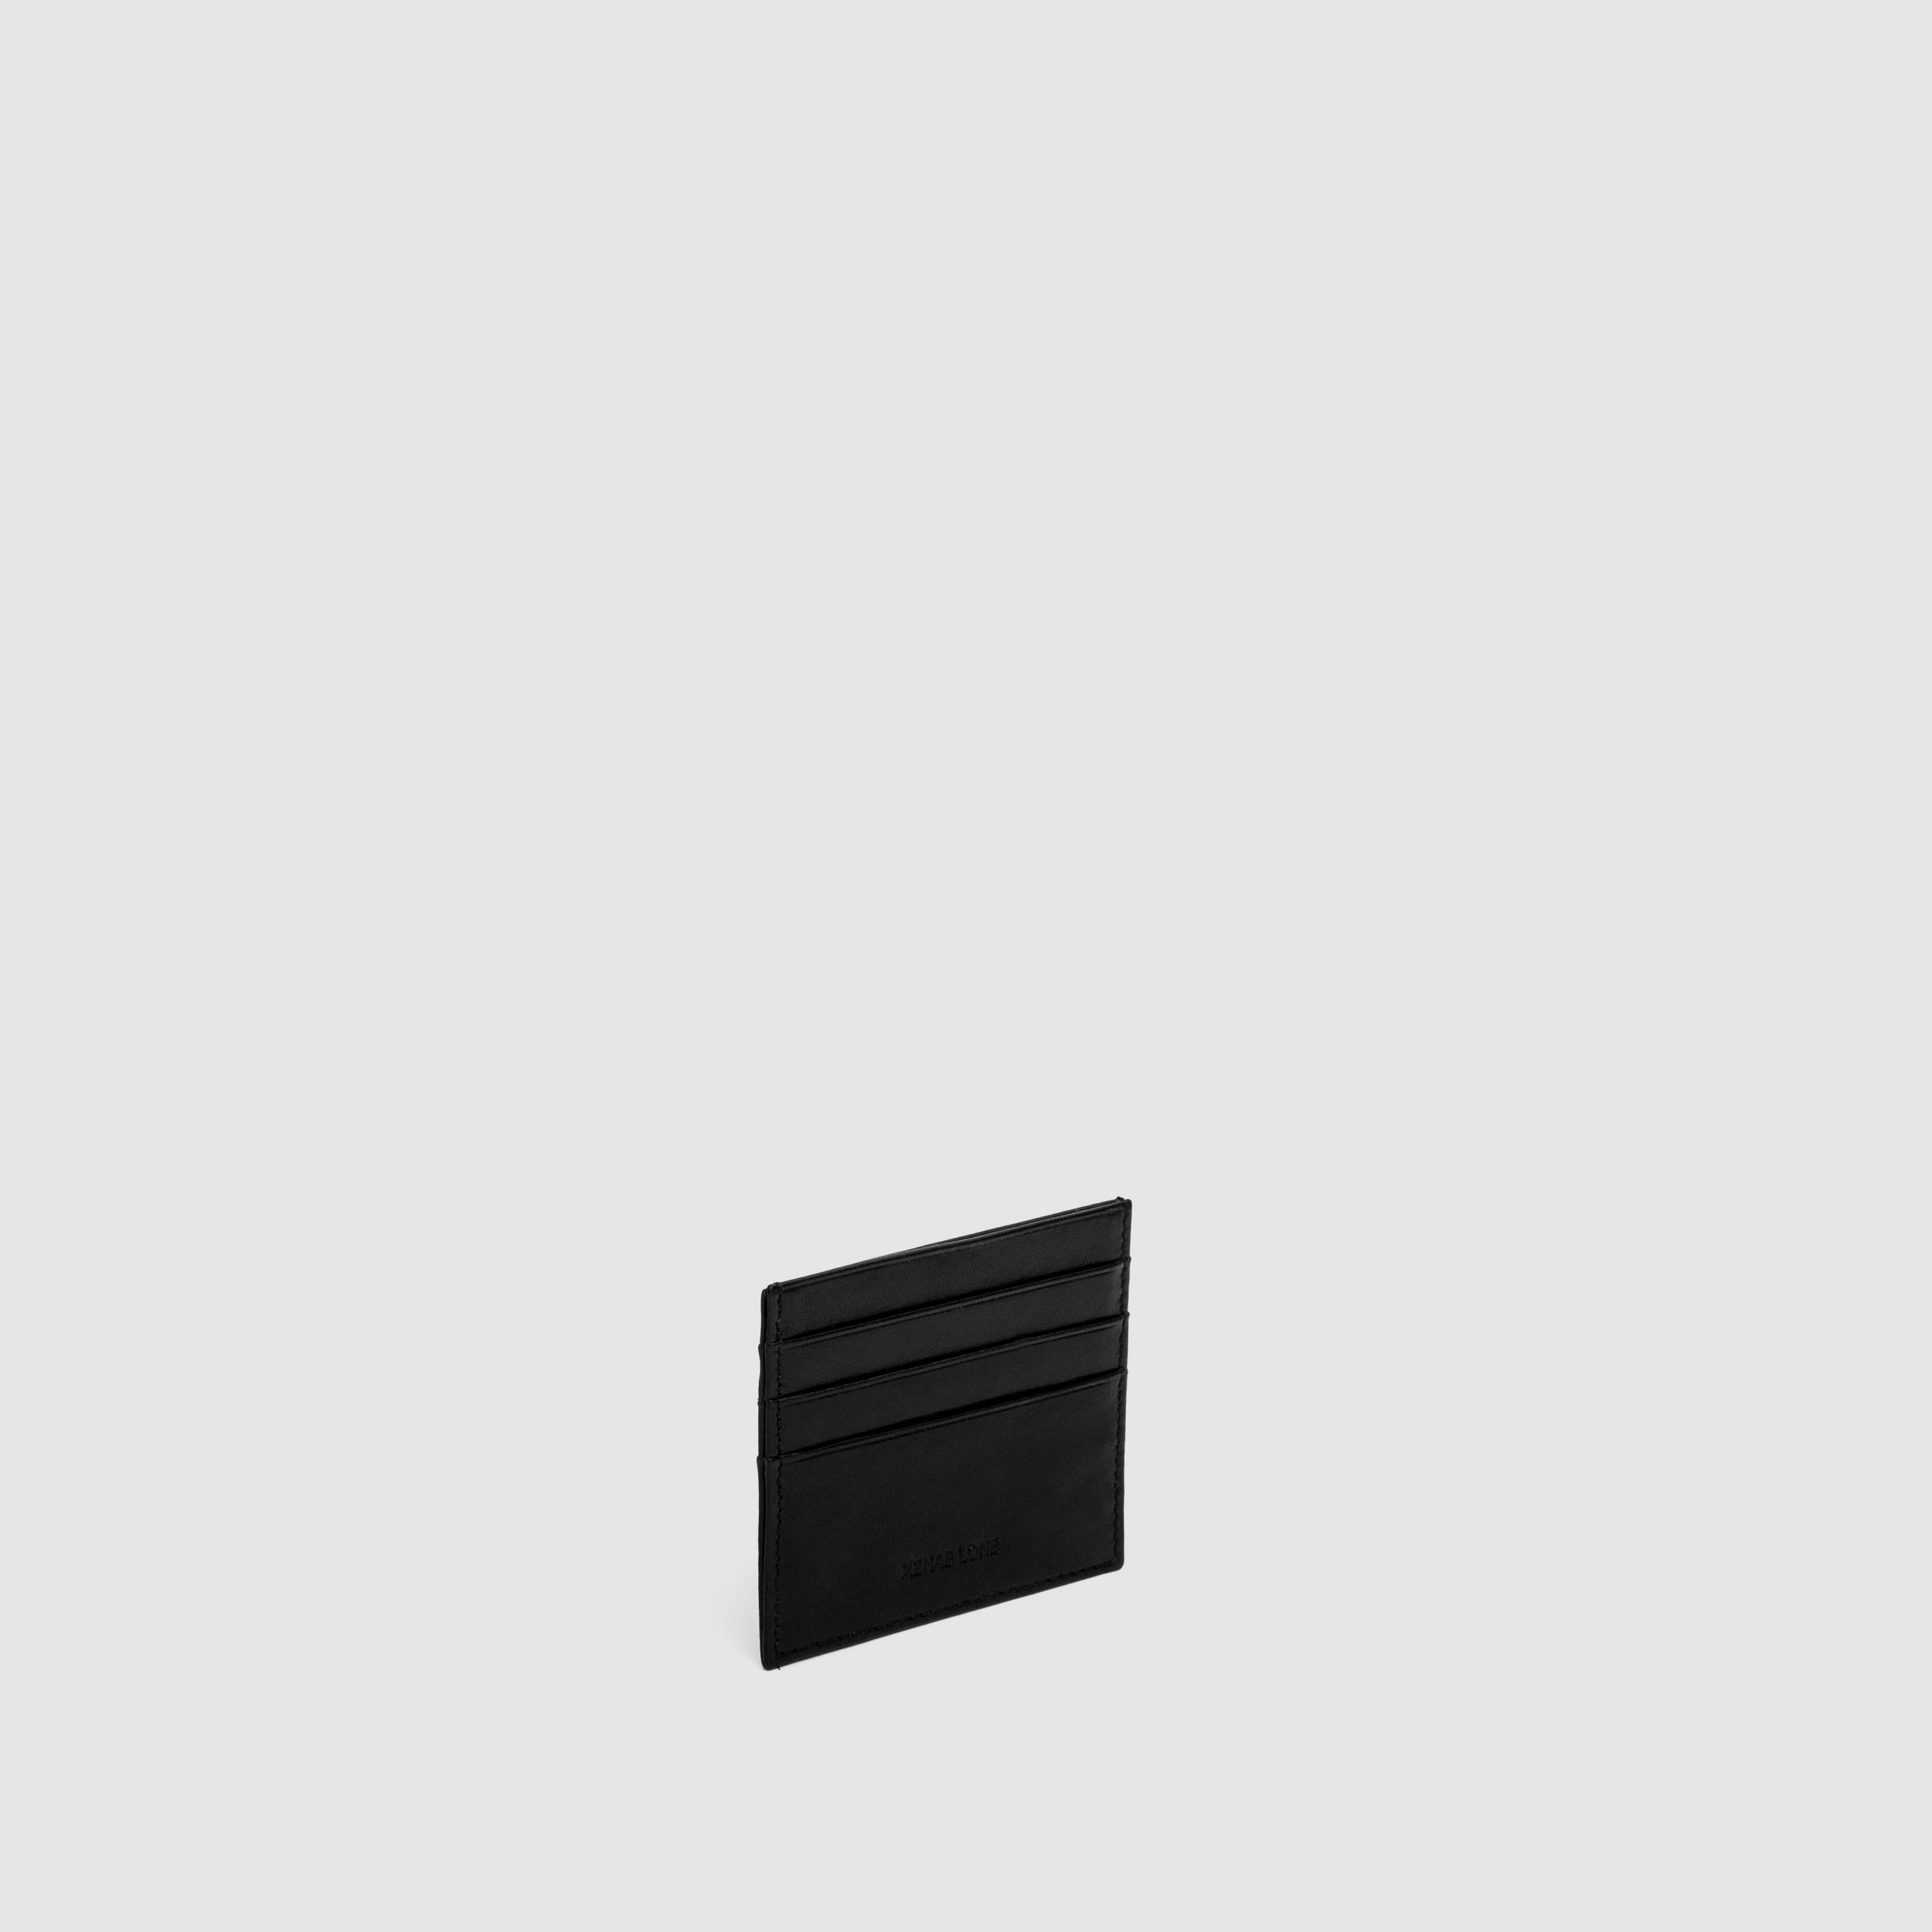 Wallets&Pouches_0002s_0000s_0005_Layer 23.jpg